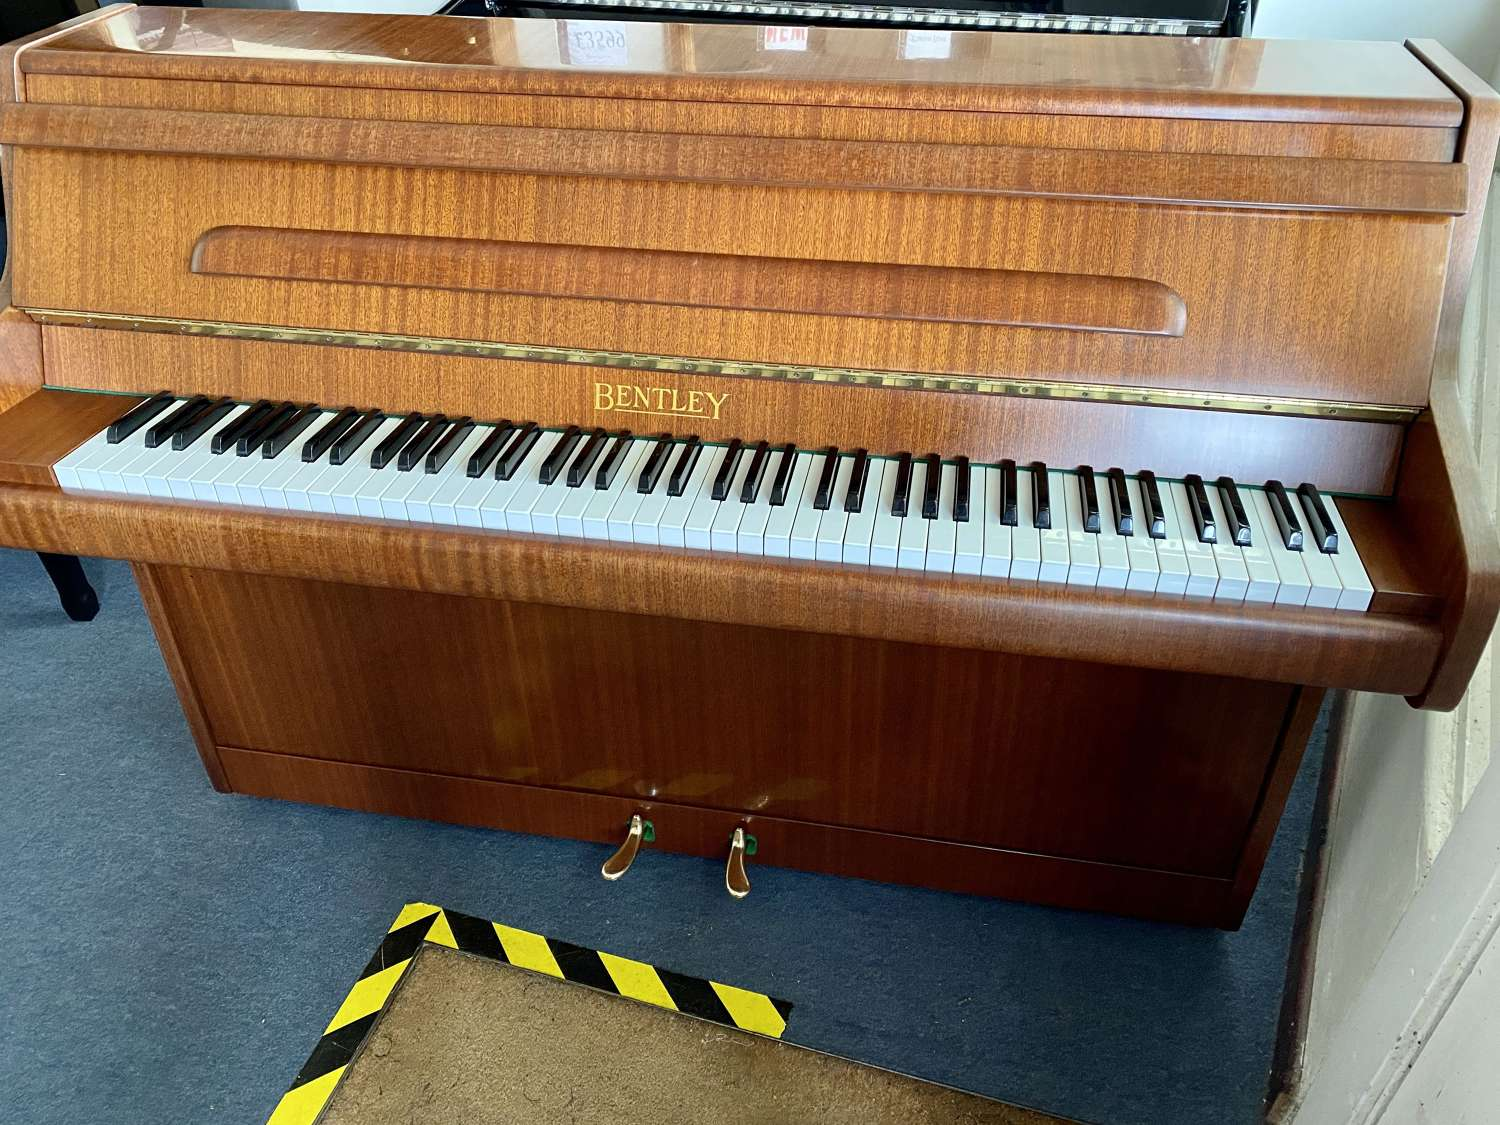 BENTLEY modern upright piano for sale